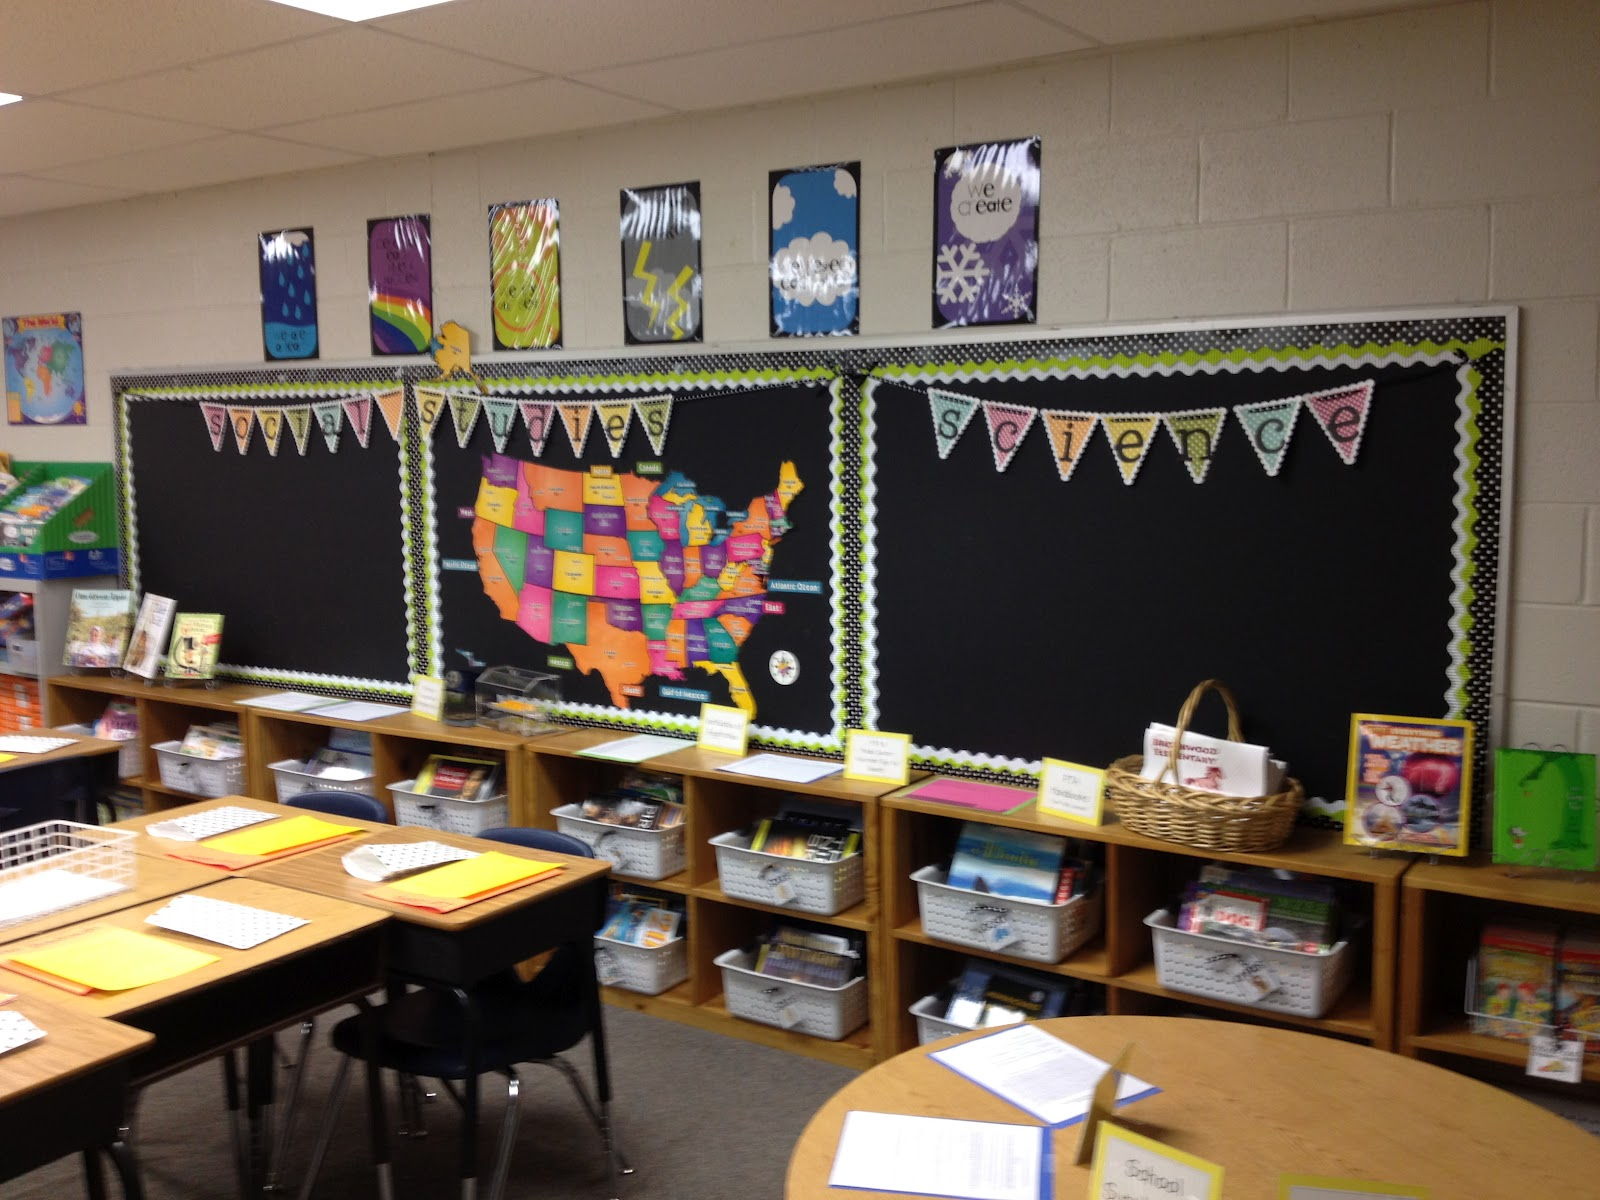 Classroom Wallpaper Design : The polka dotted teacher come in and make yourself at home